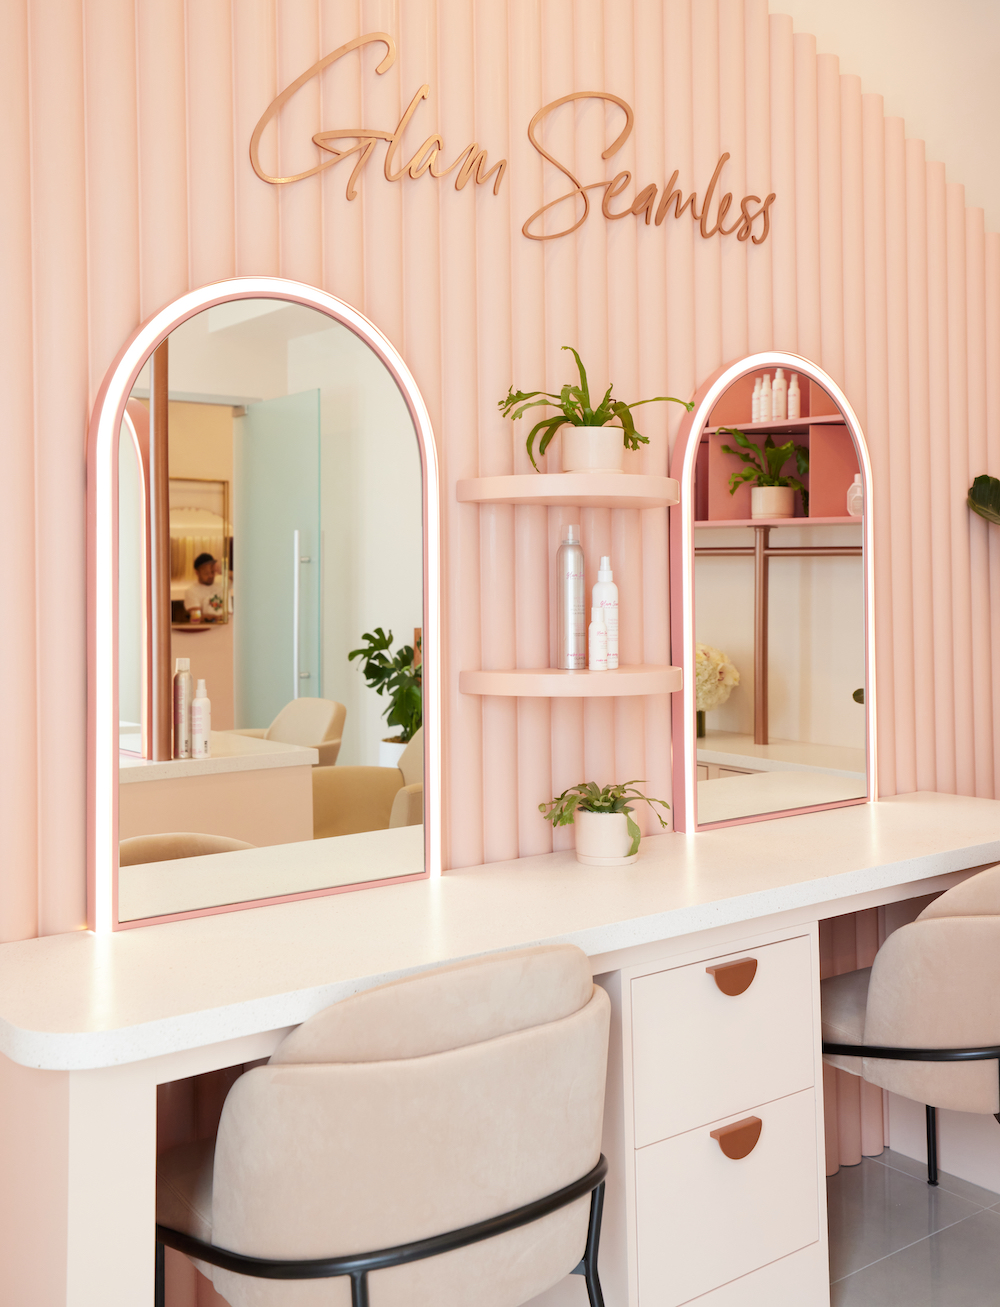 Glam-seamless-hollywood-l-catterton